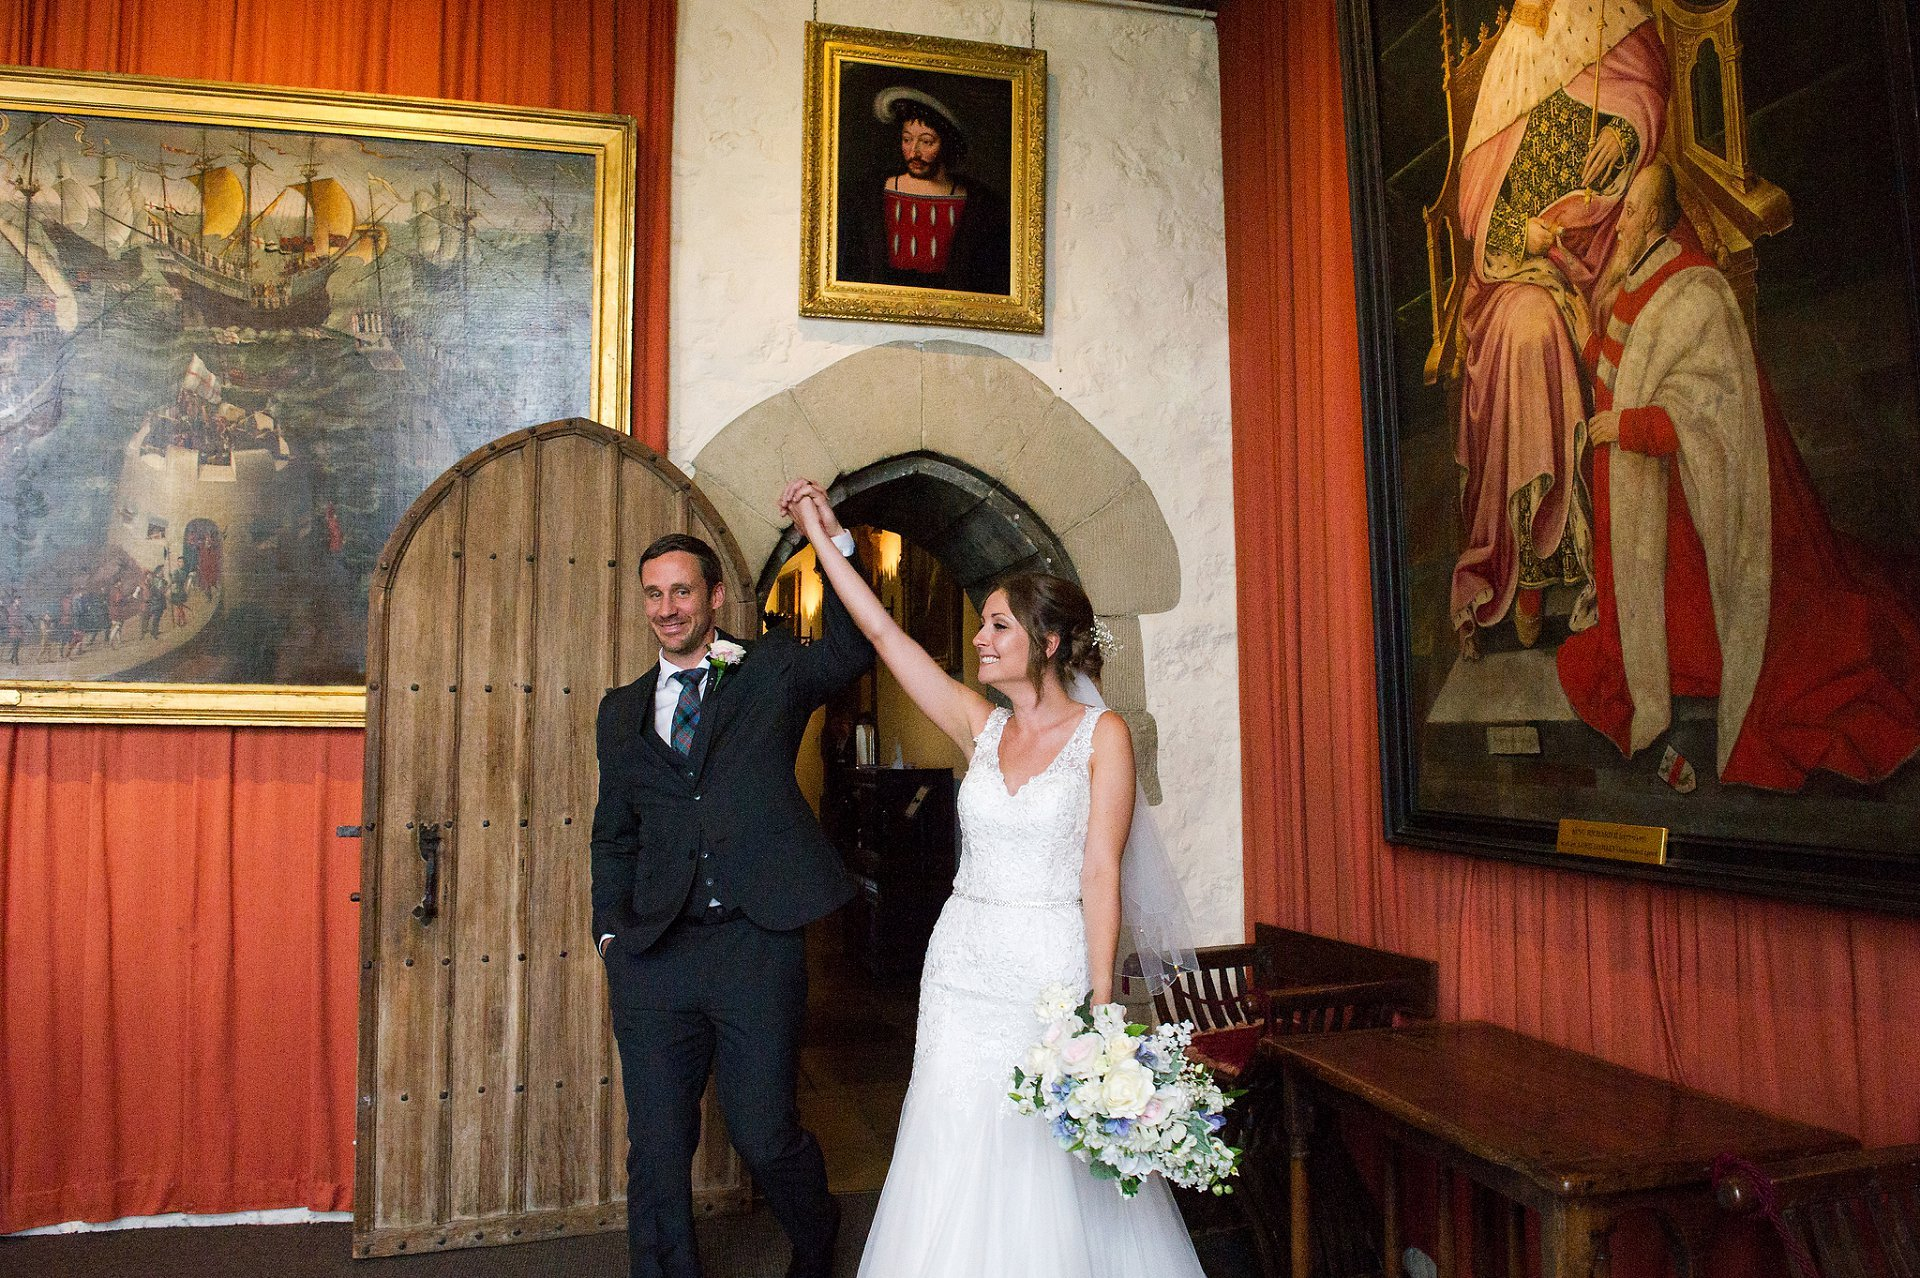 Bride & groom walk into the Henry VIII Banqueting Hall at Leeds Castle to celebrate their wedding with arms aloft